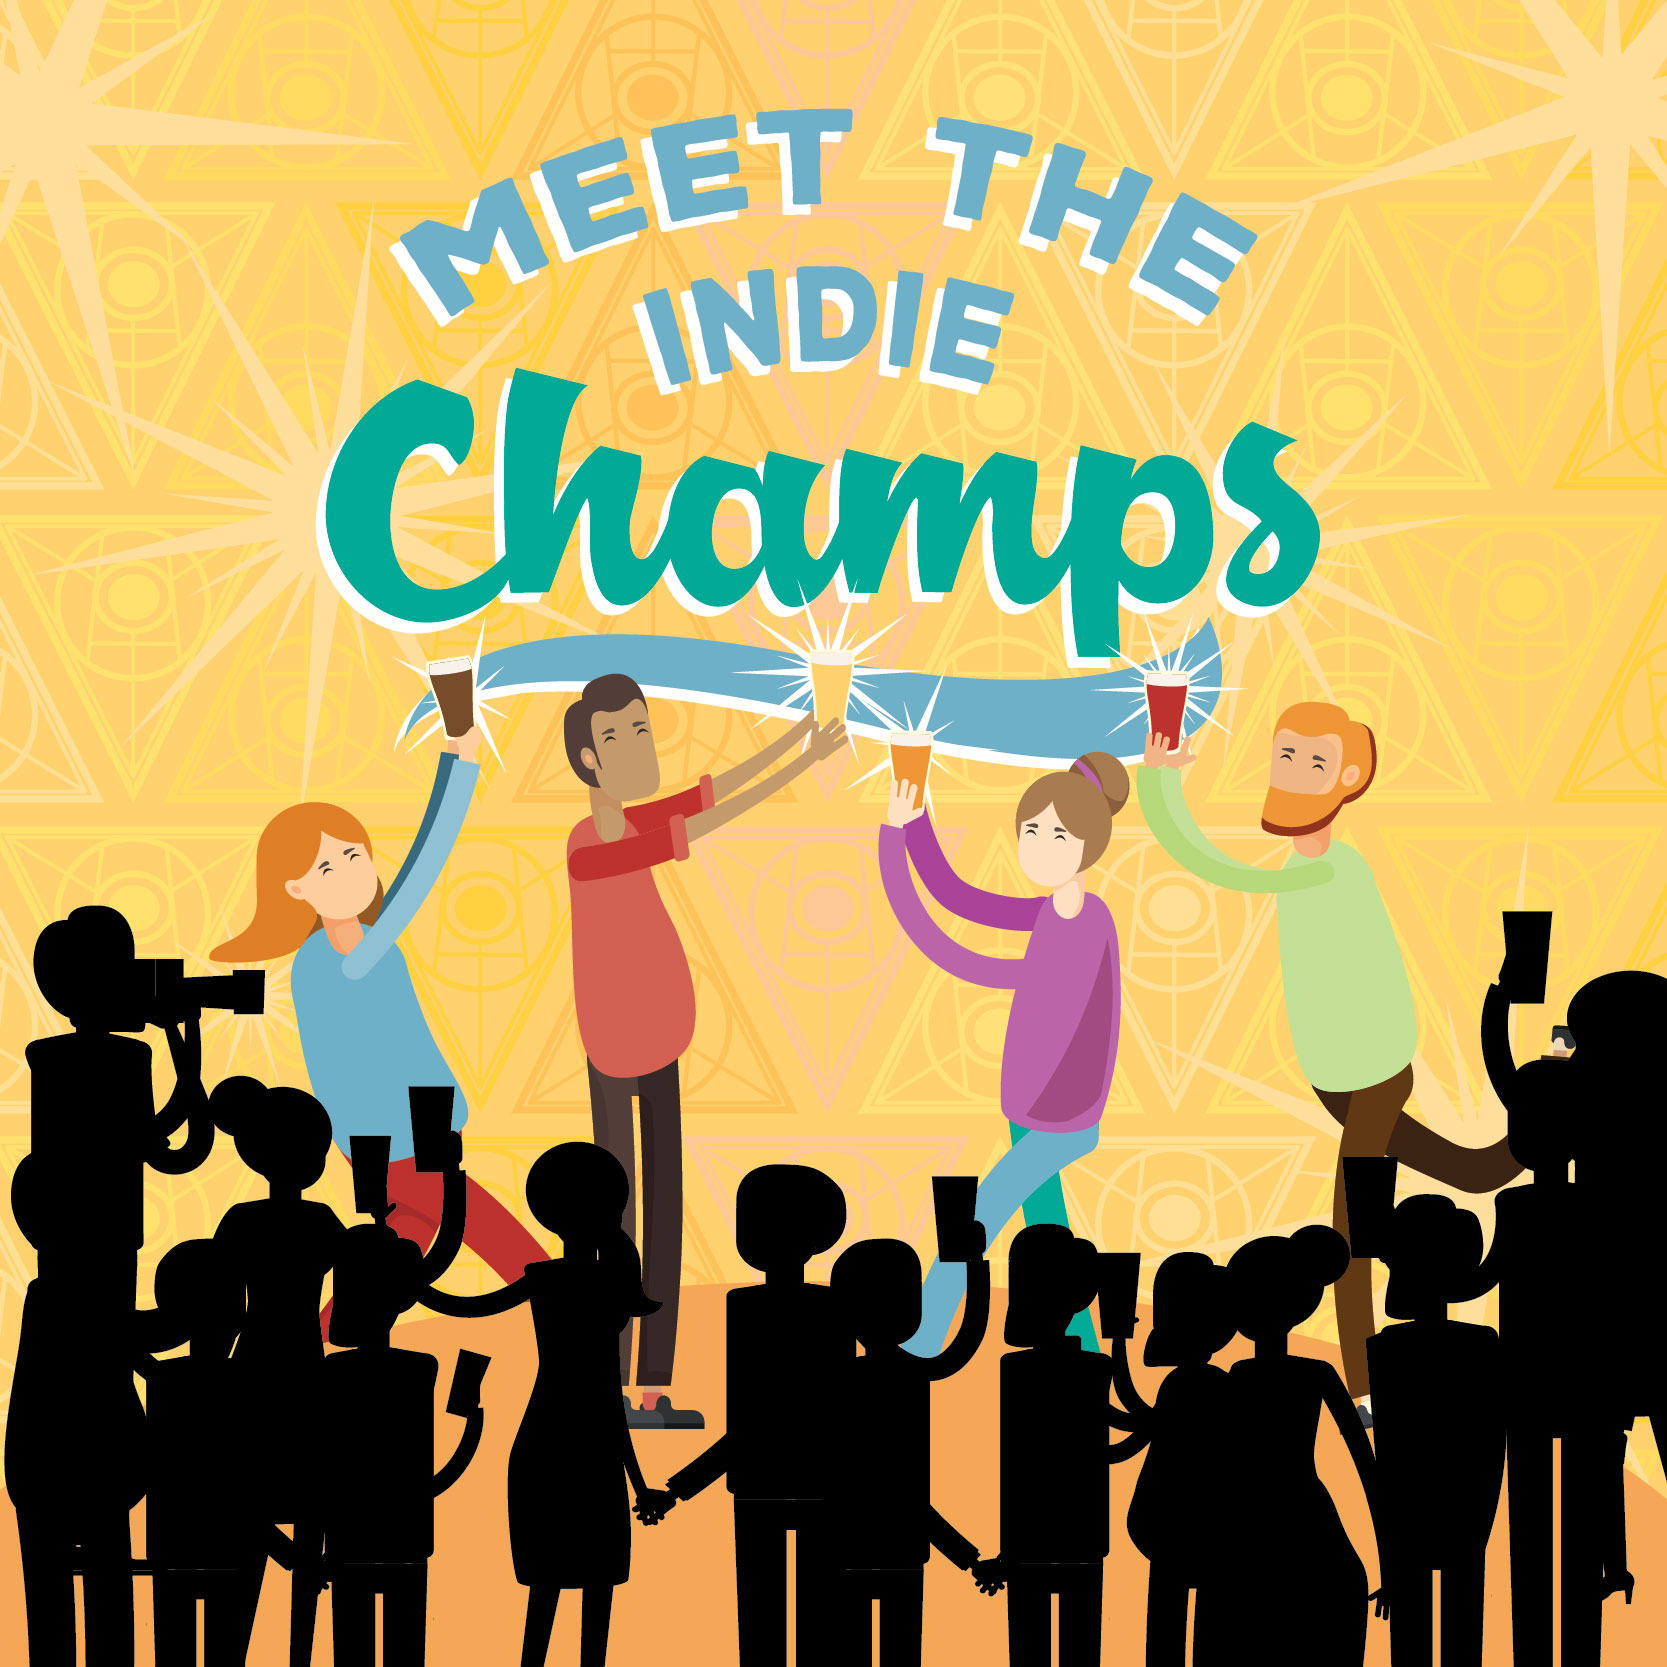 Discount Tickets For Meet The Indies (Going Solo)